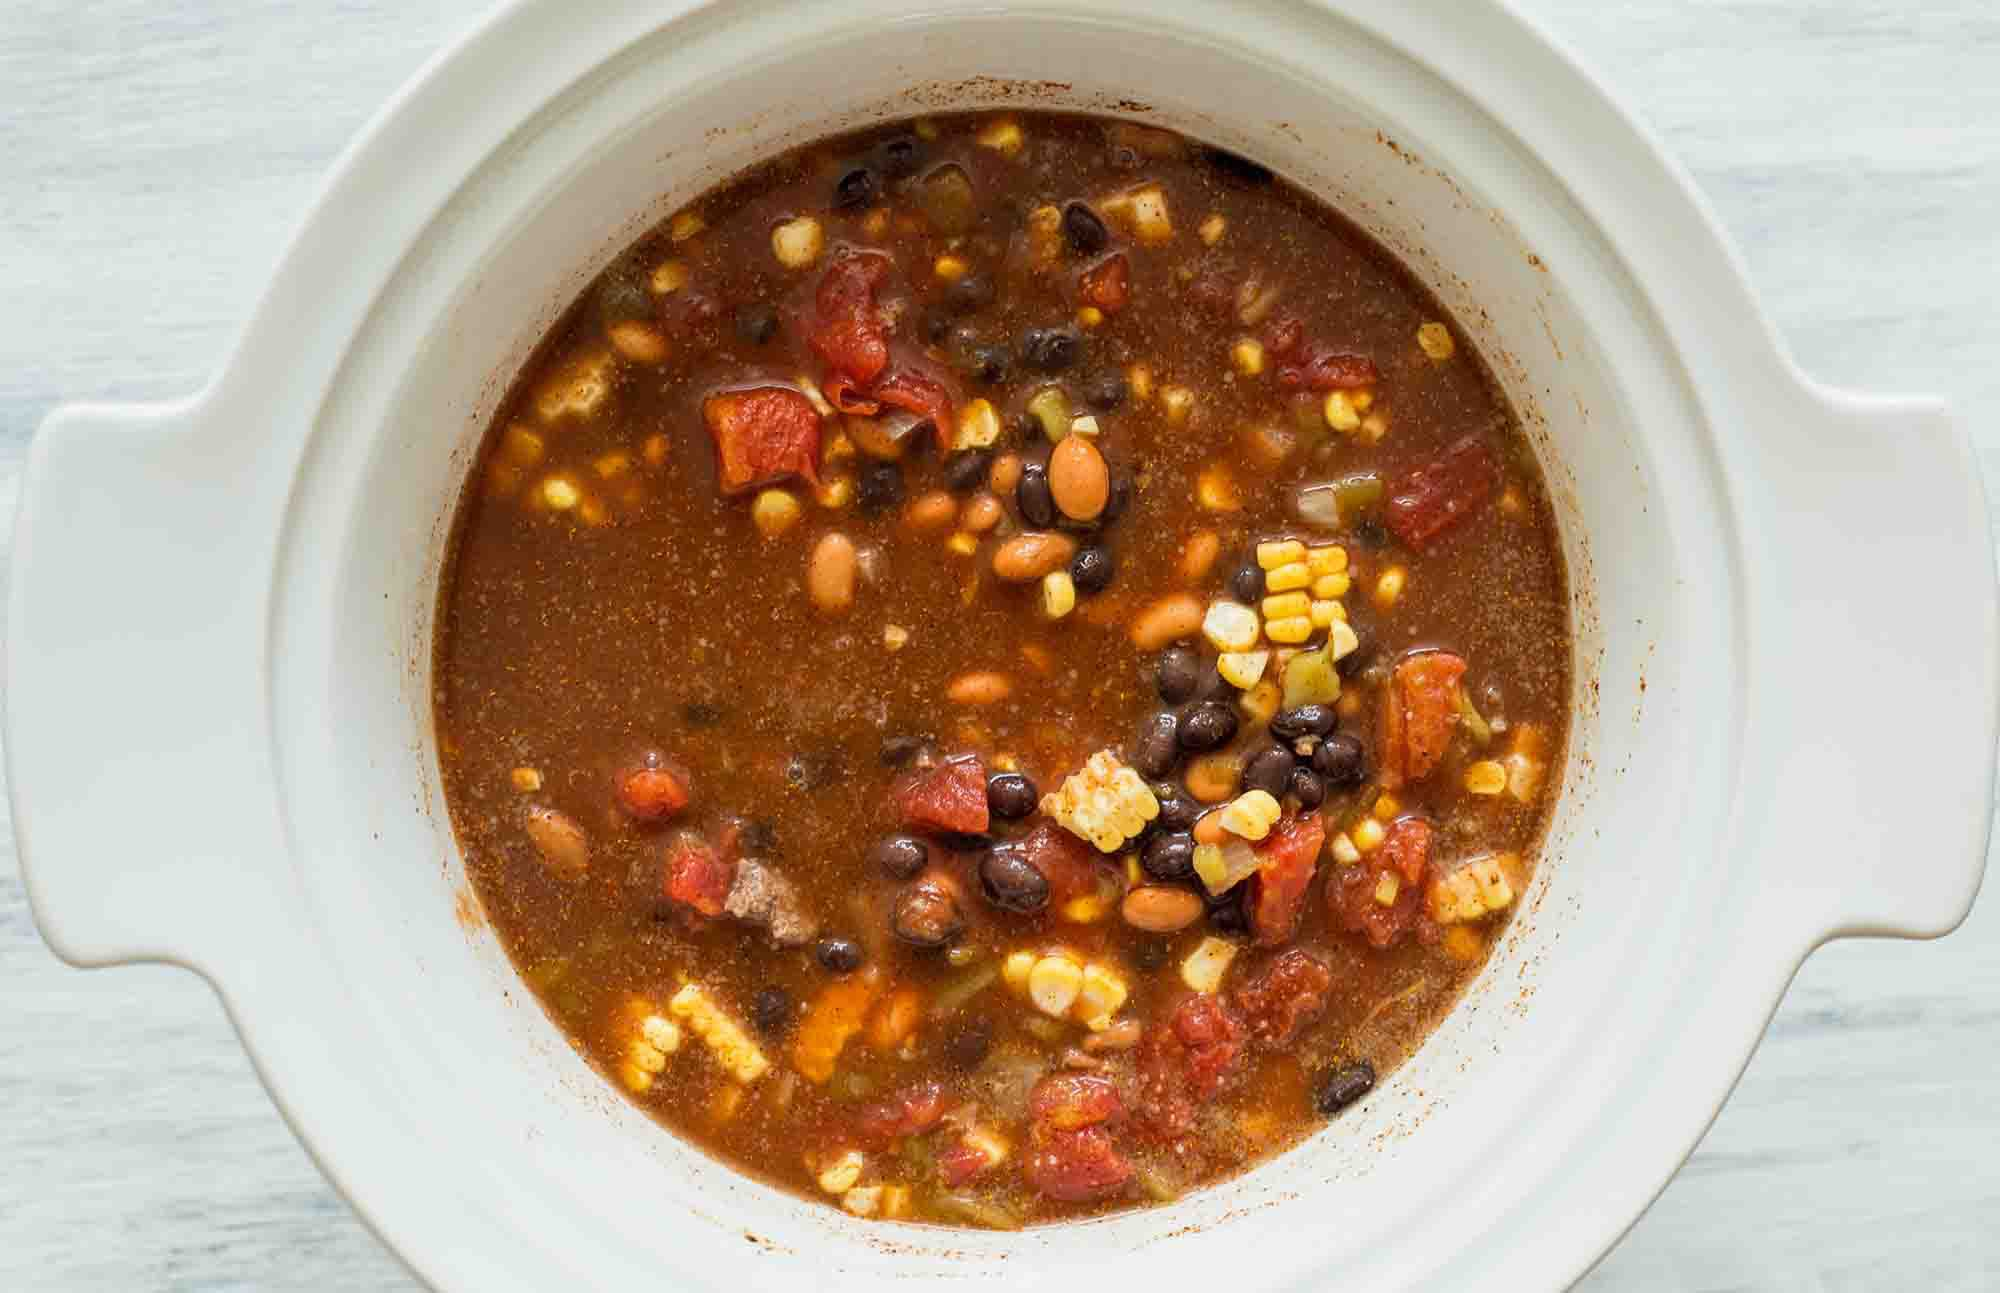 Stir together the ingredients for slow cooker taco soup in the crockpot insert